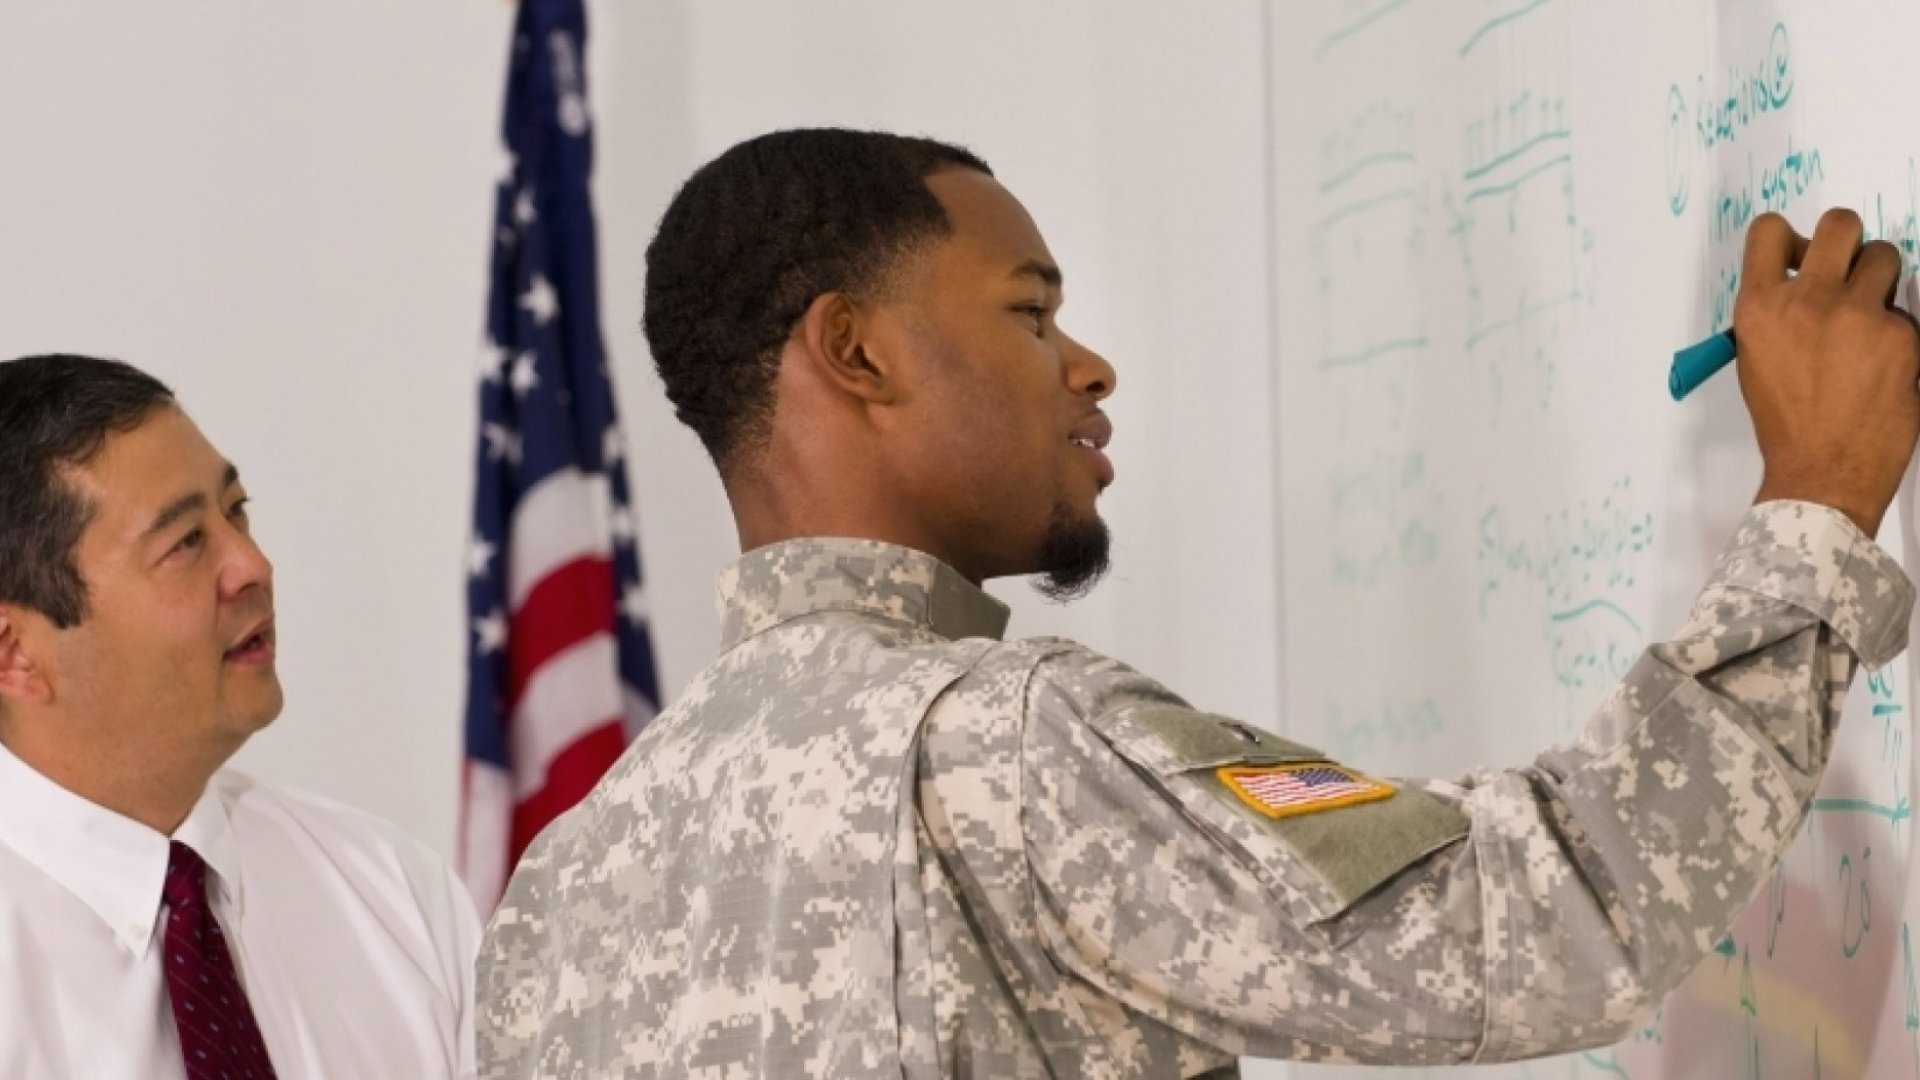 How This Nonprofit is Bringing Back American Jobs, One Veteran at a Time